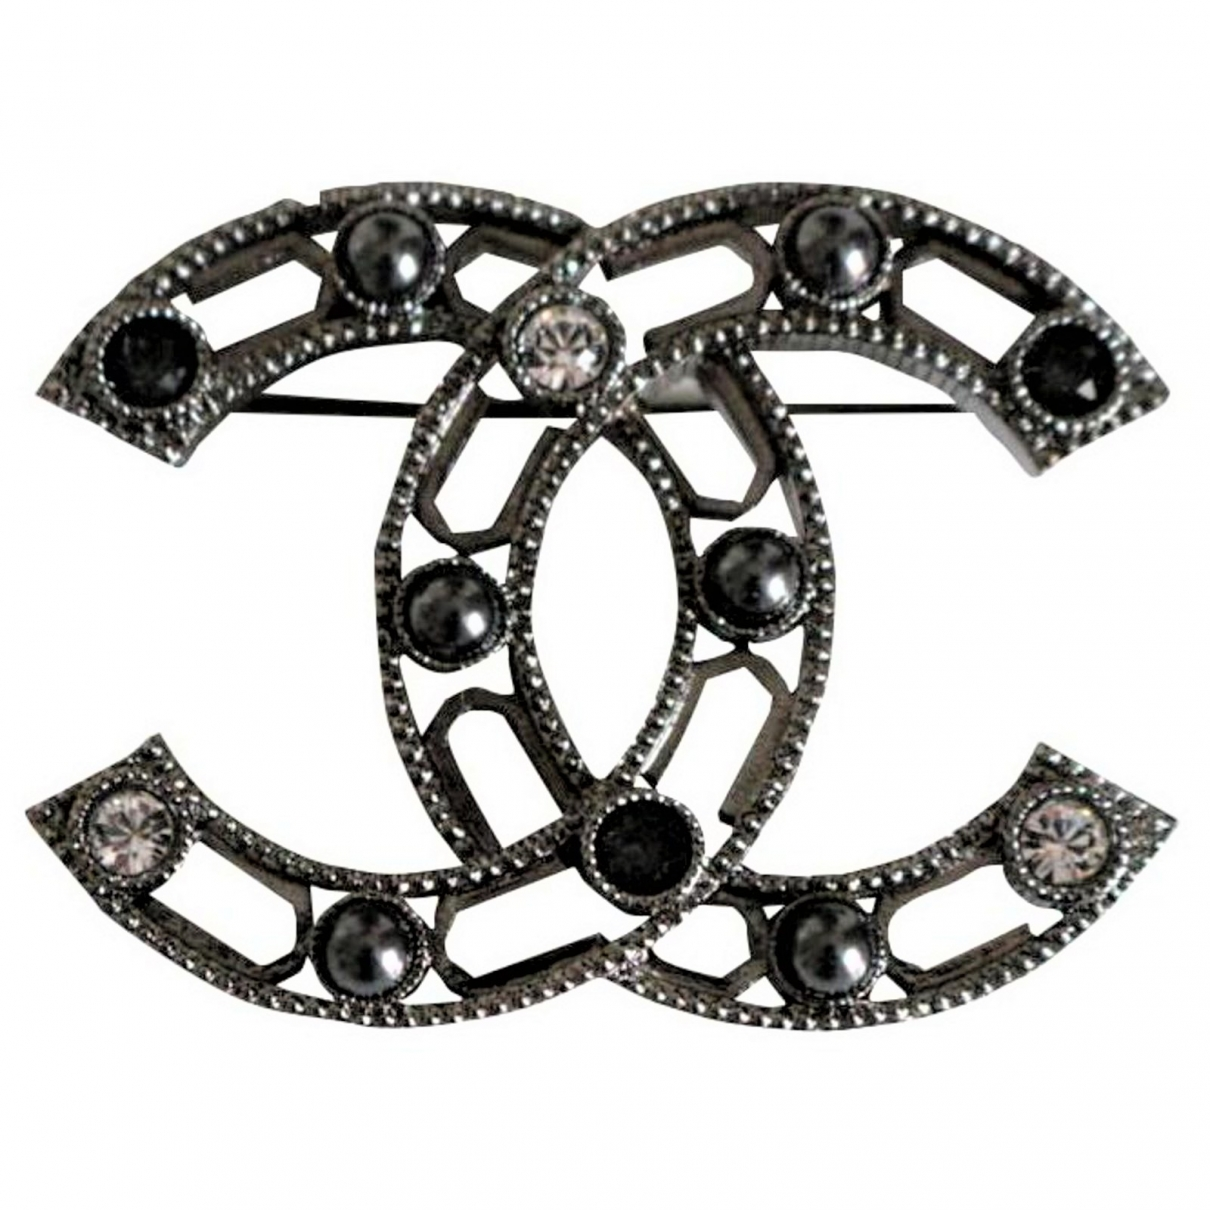 Broche CC en Metal Antracita Chanel